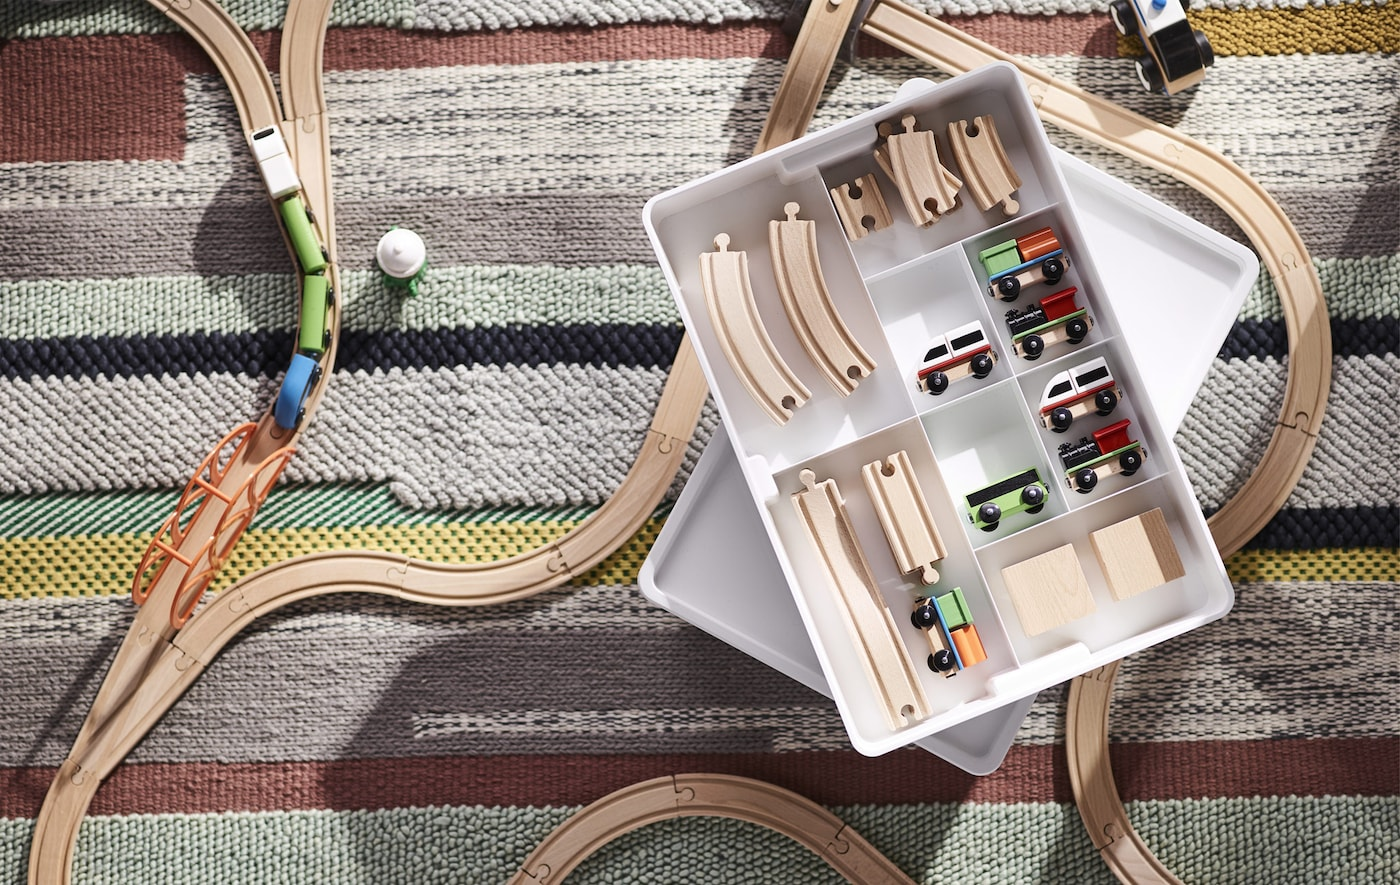 An overhead image of a children's train set